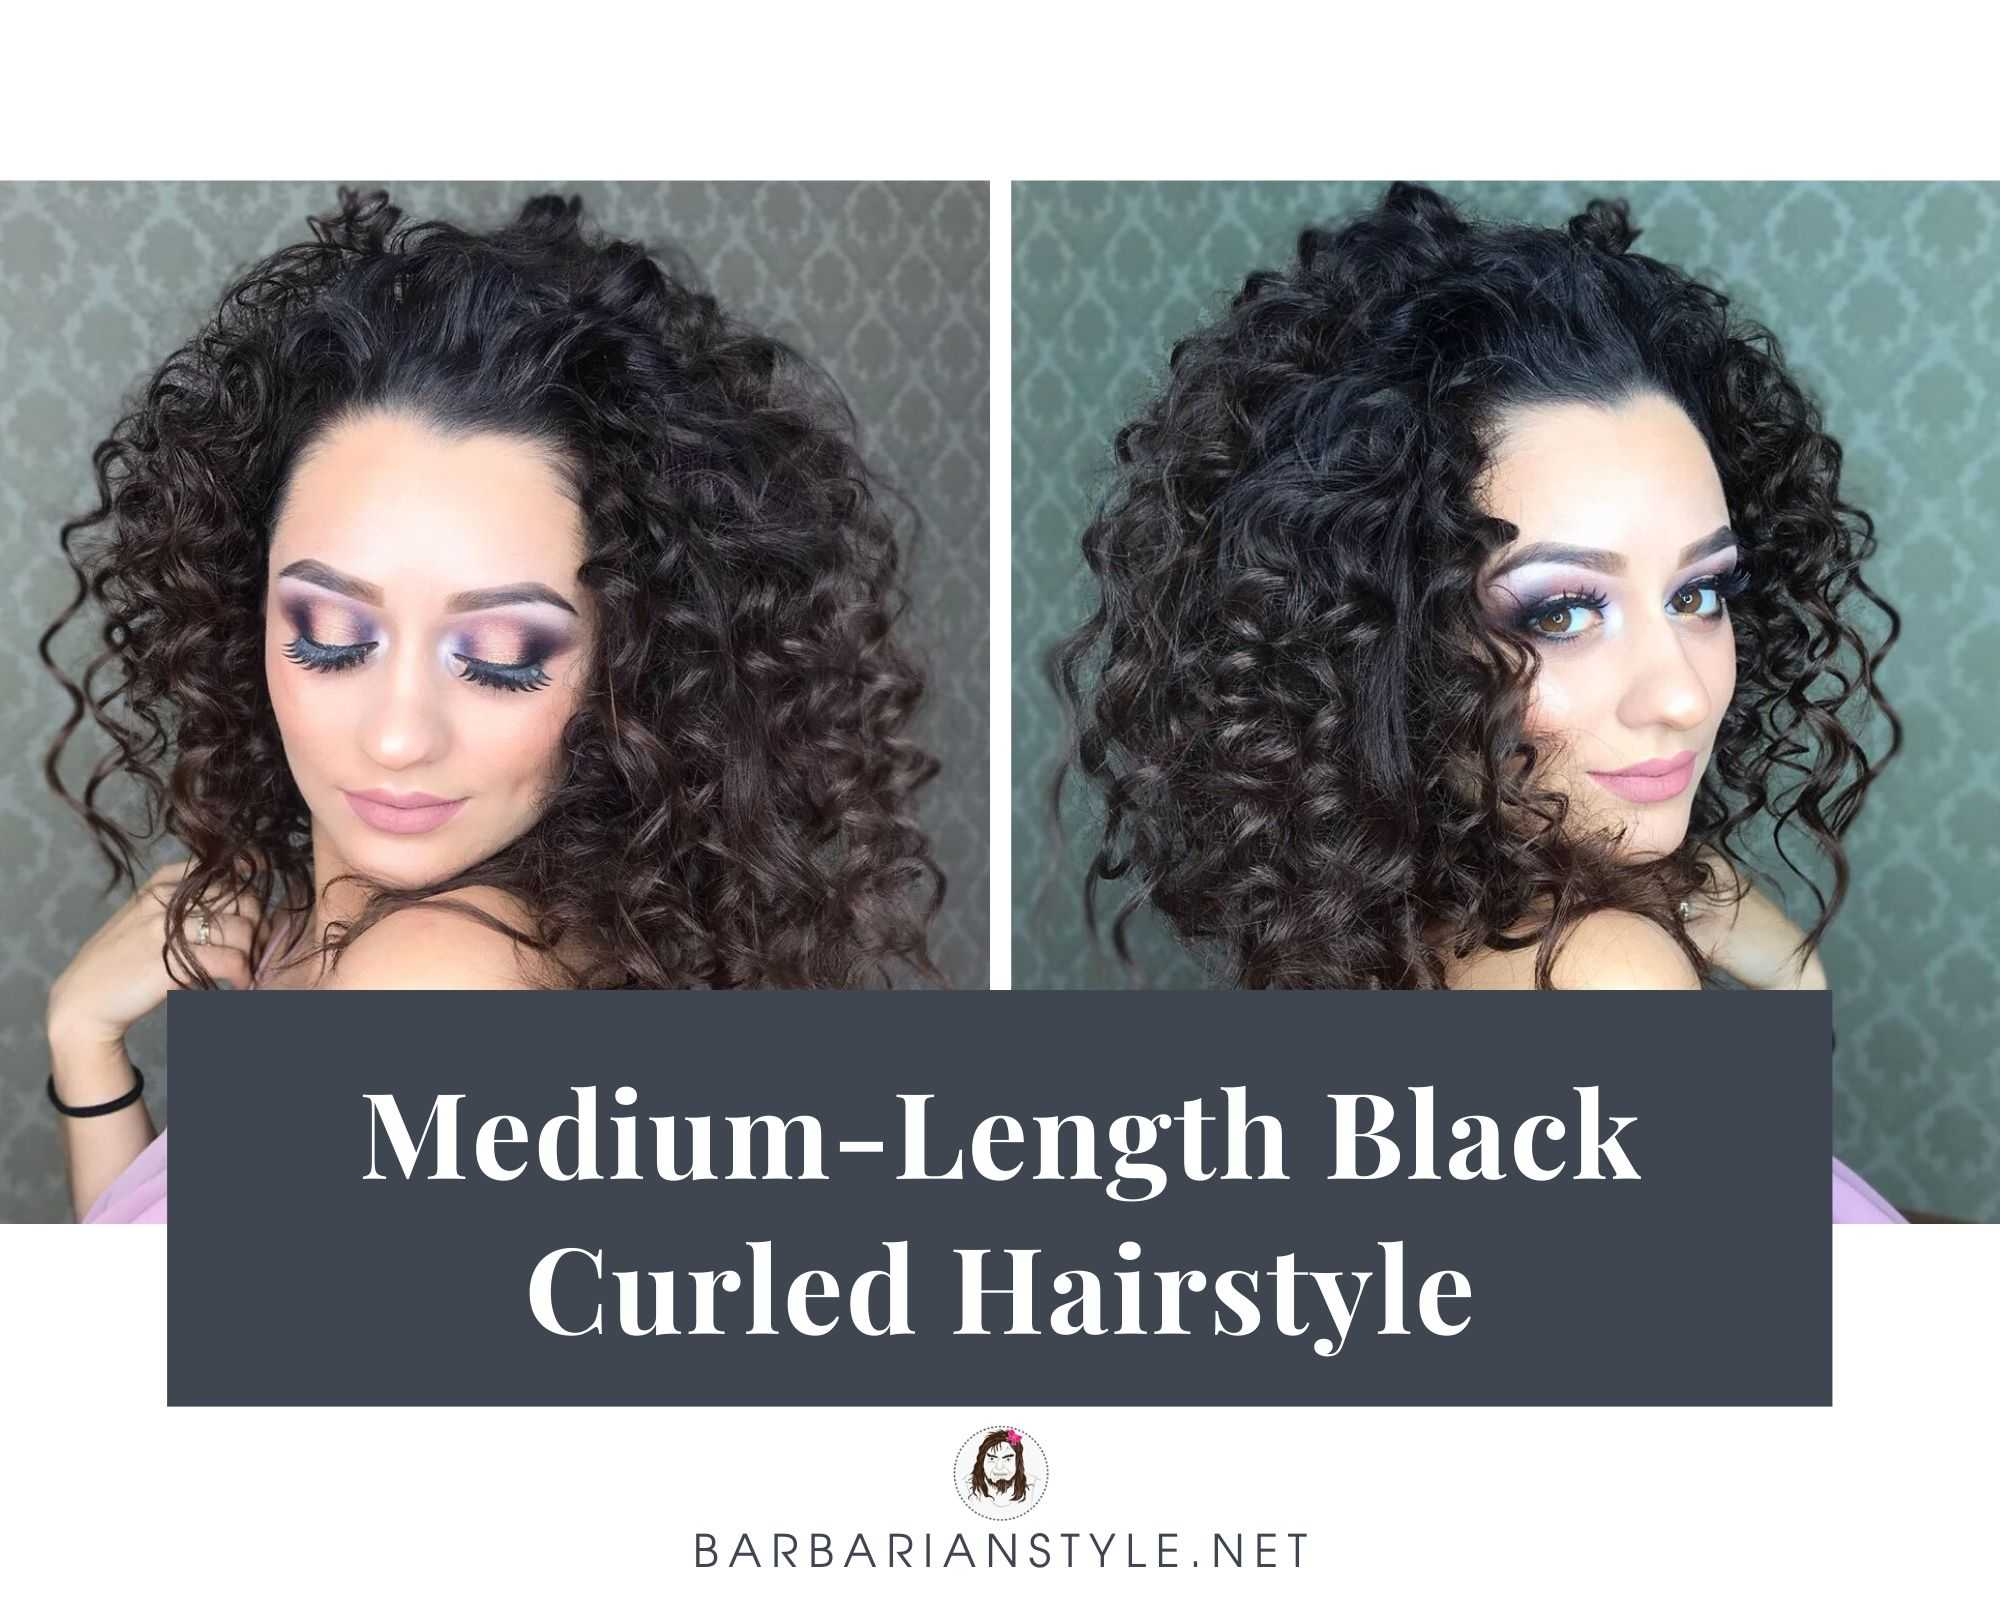 medium-length black curled hairstyle